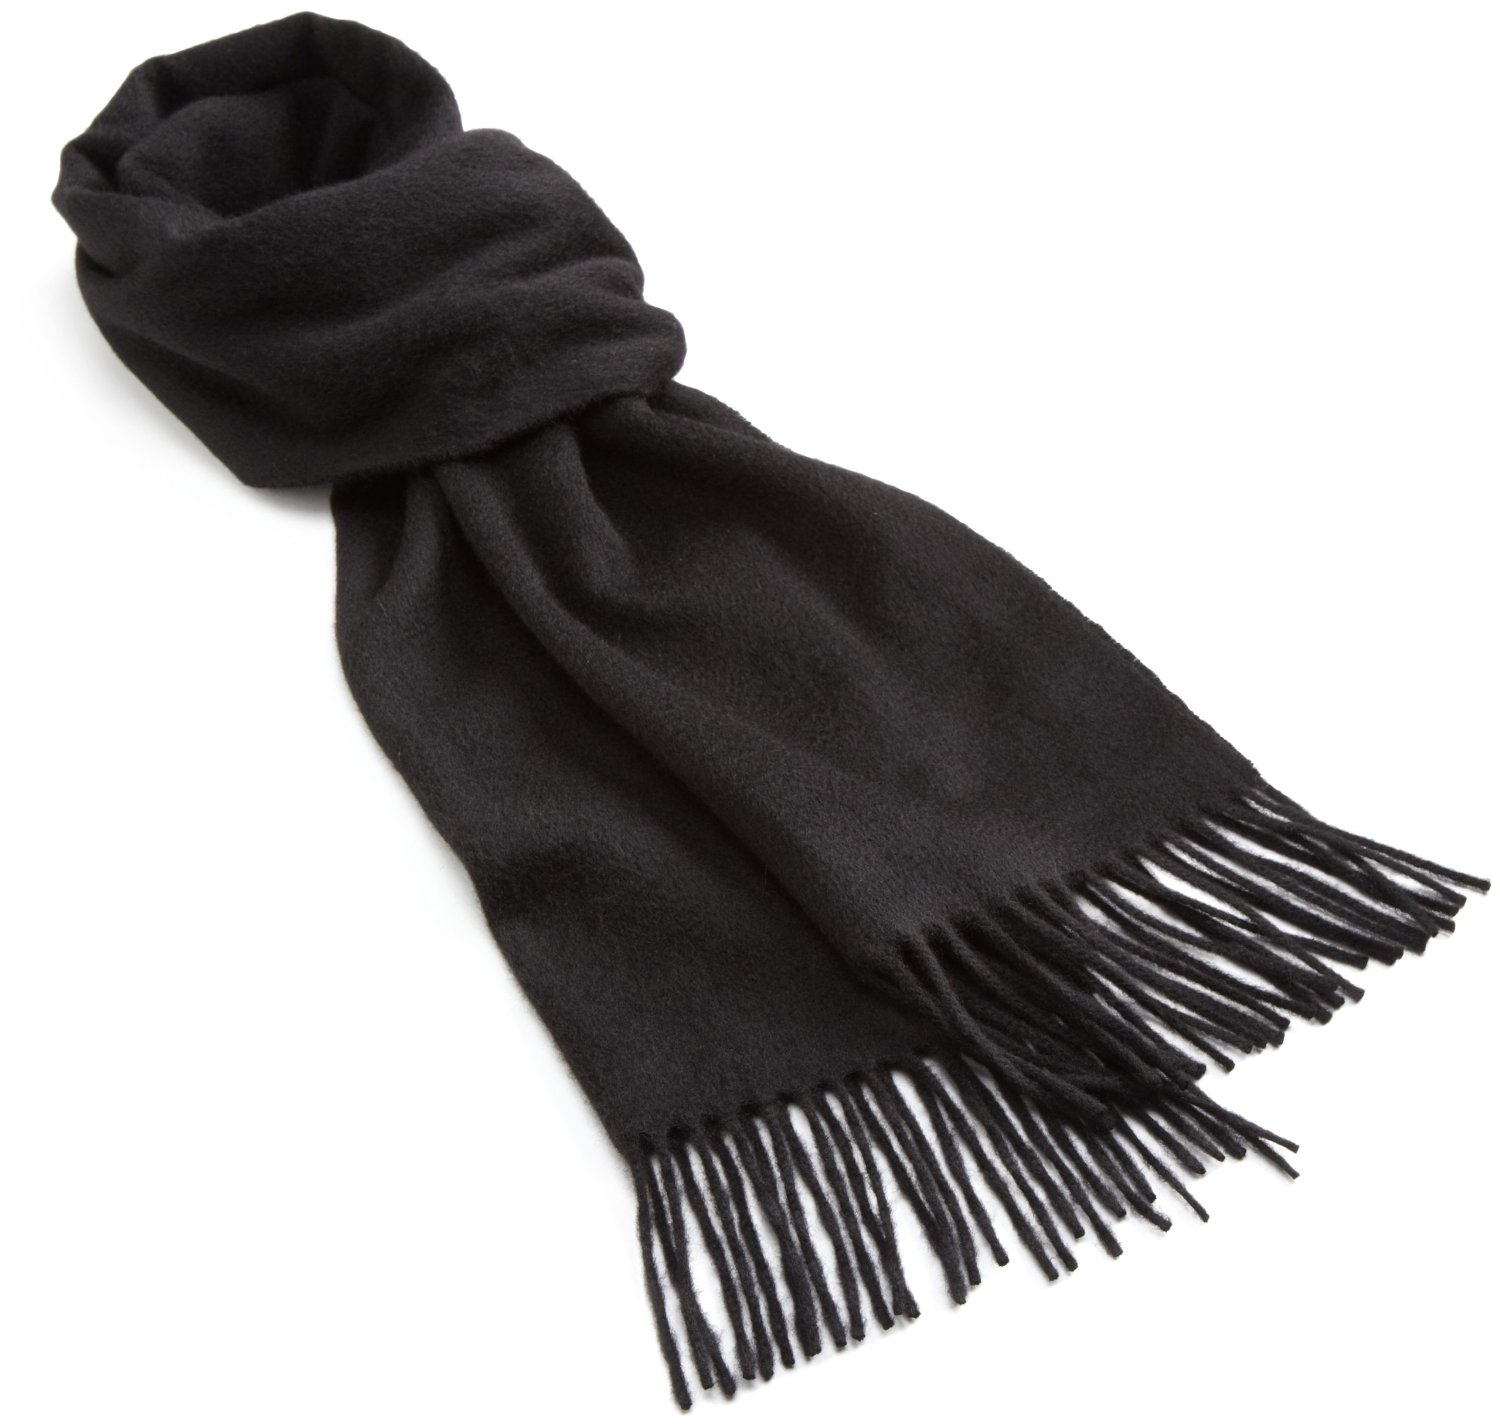 Free shipping BOTH ways on Scarves, Black, Men, from our vast selection of styles. Fast delivery, and 24/7/ real-person service with a smile. Click or call